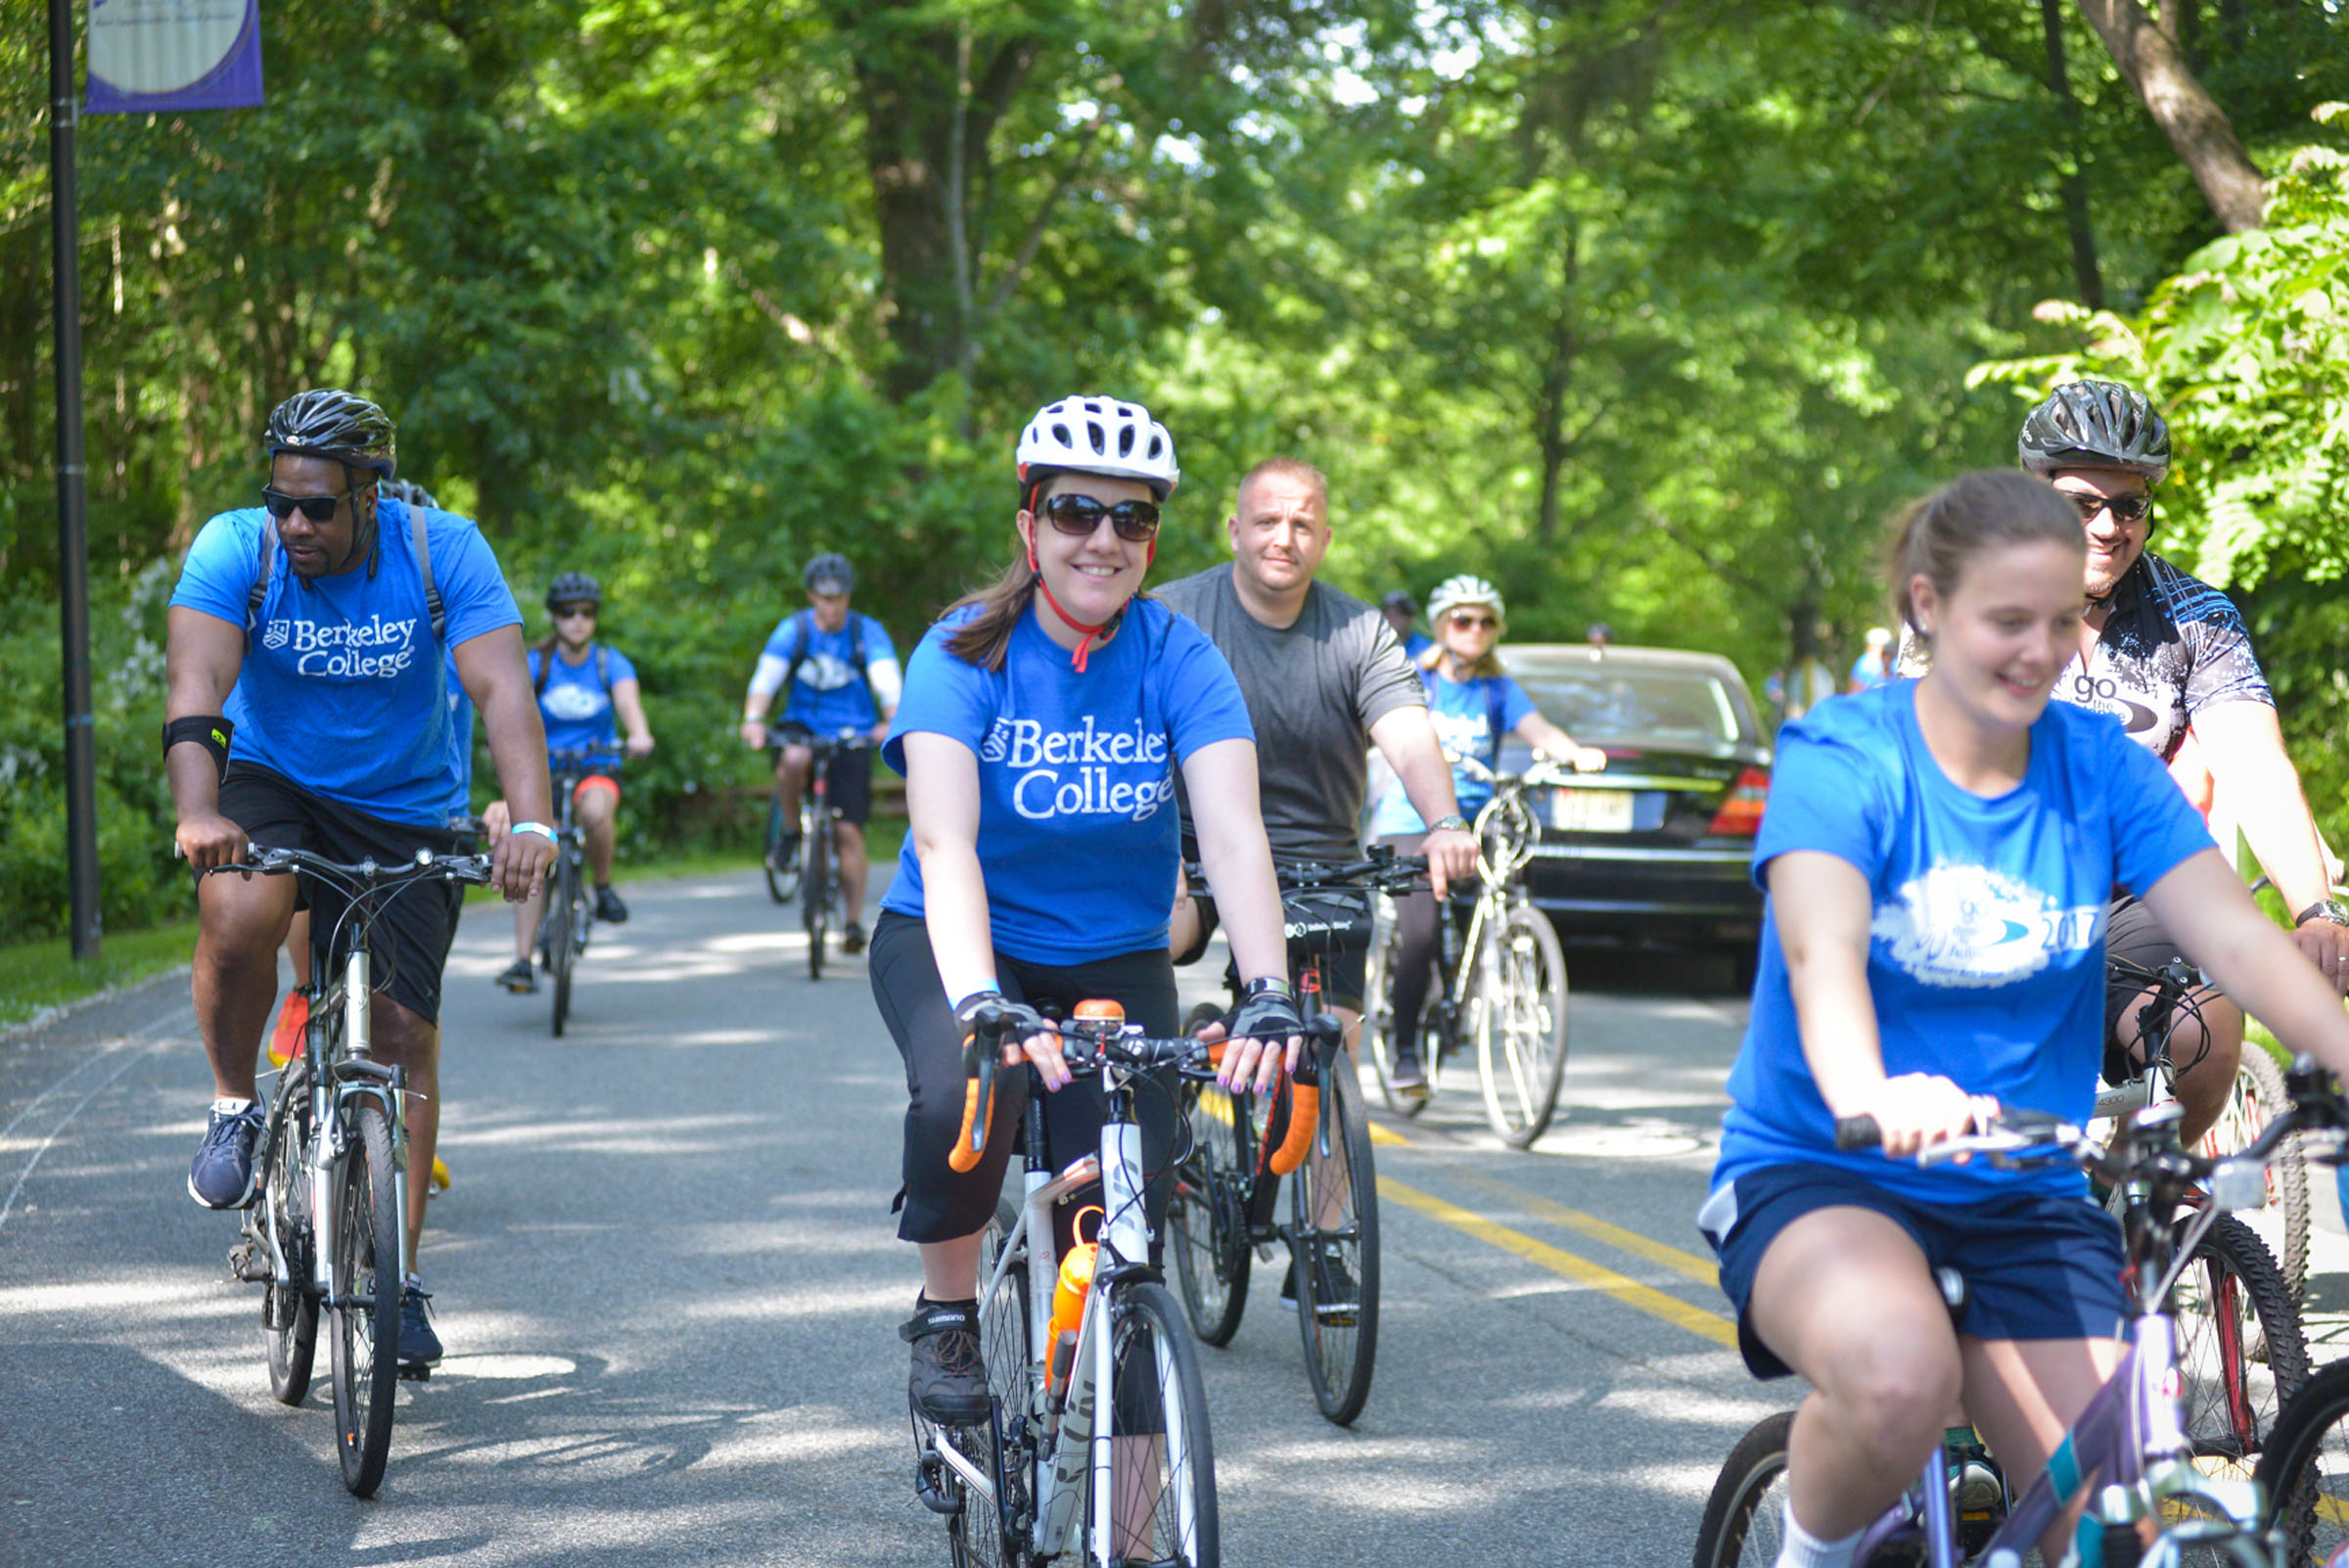 2017-06-04 GTD4A Charity Bike Ride - BCC - Paramus NJ-1965.jpg